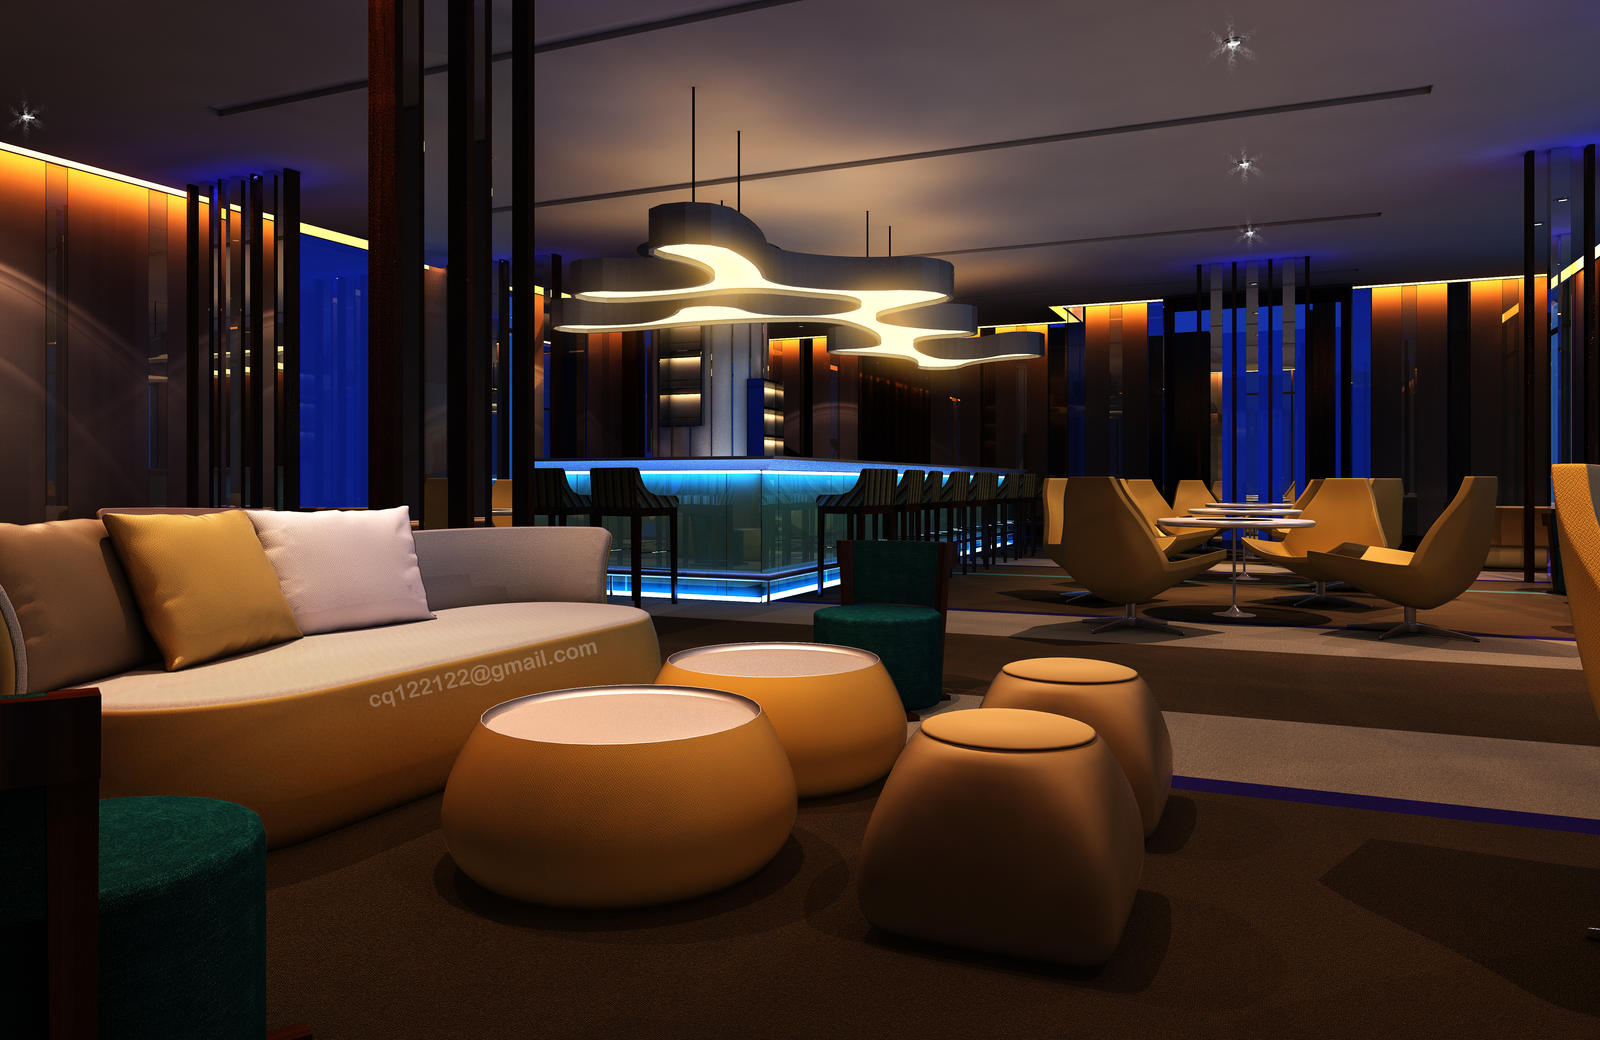 Hotel Lounge Bar Design Night By DouglasDao On DeviantArt